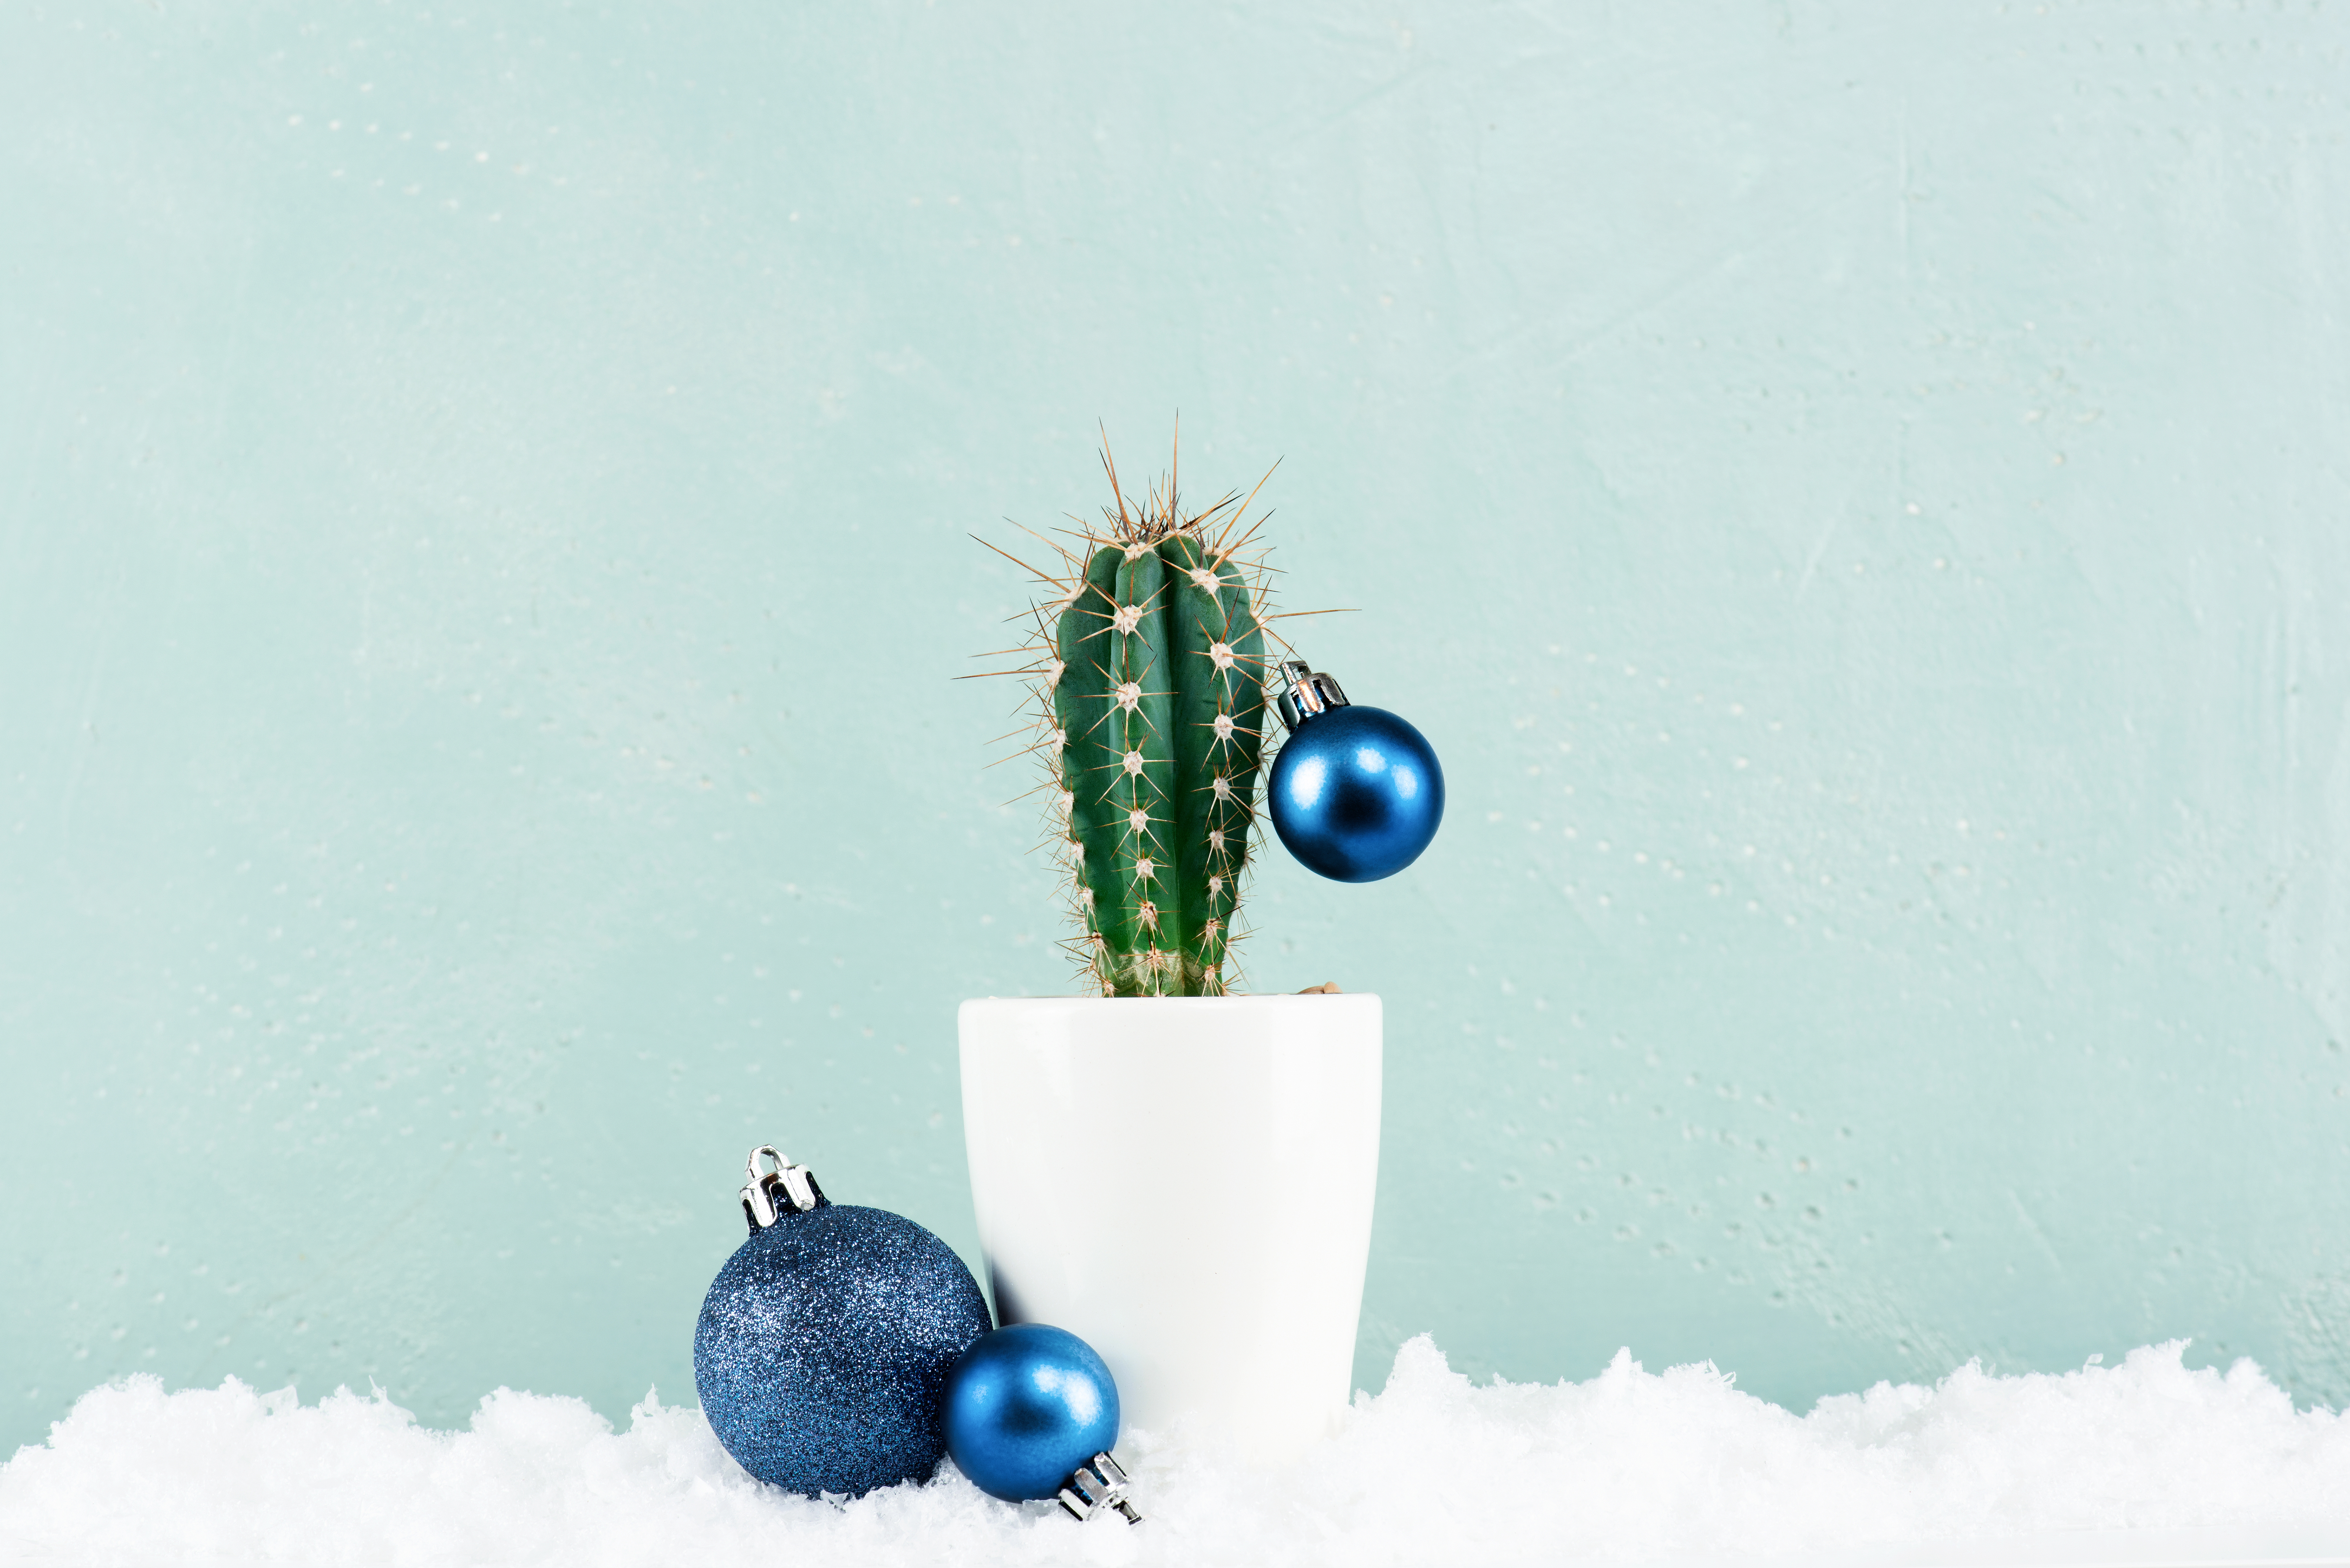 Funny Cristmas cactus decorated with blue Christmas balls with snow on the pastel blue background